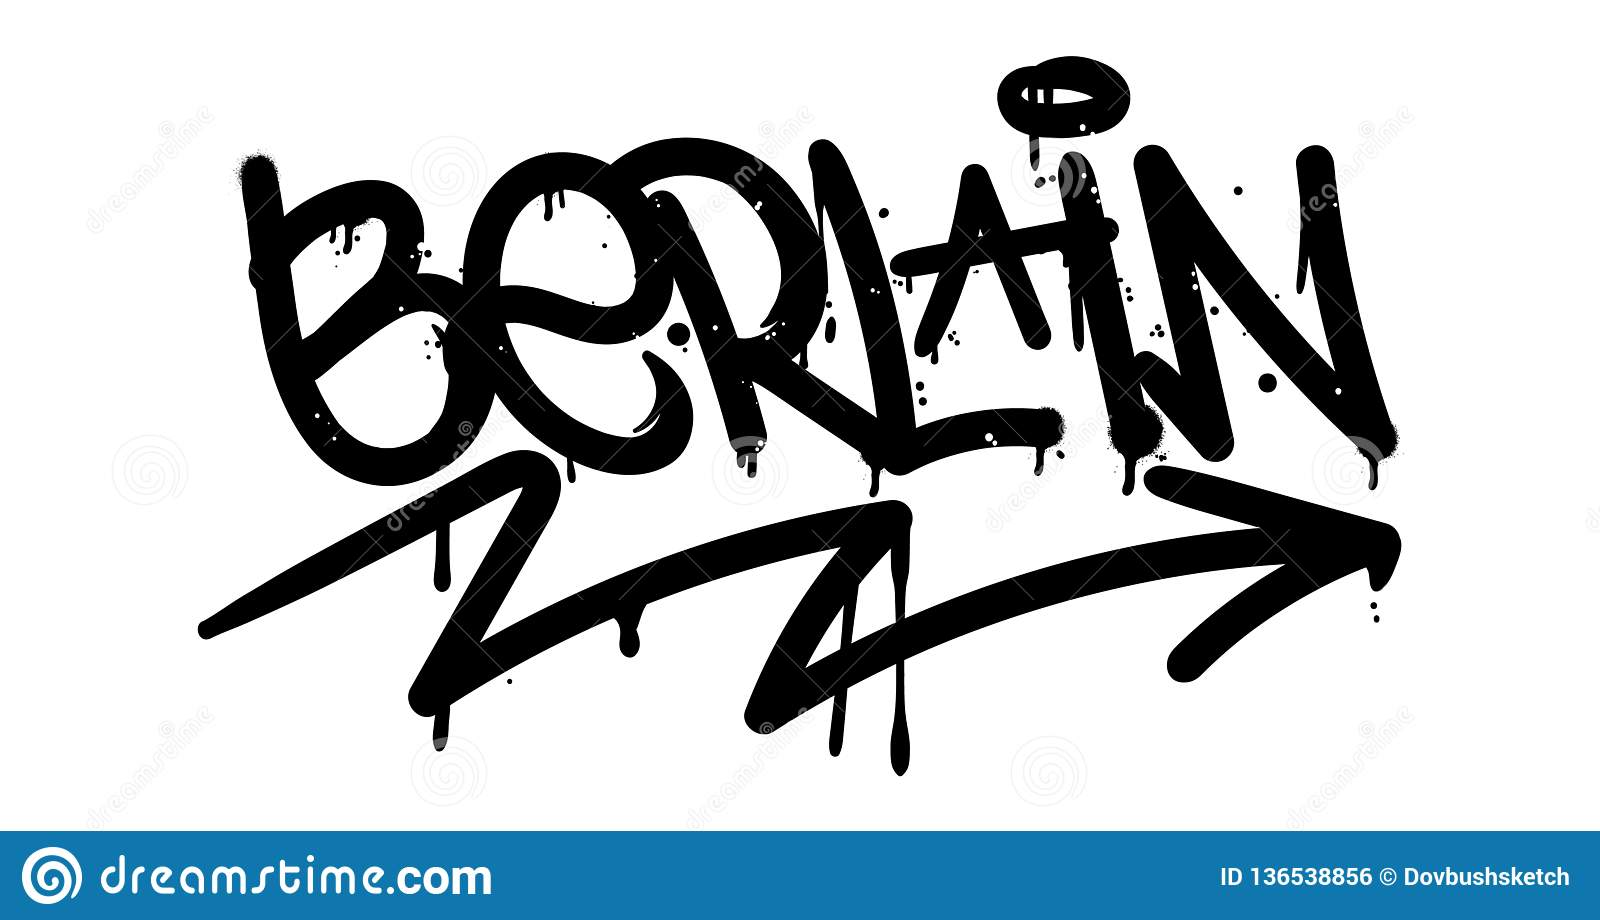 City berlin in graffiti tag style on wall by using aerosol spray paint or marker street type lettering for poster cover print clothes pin patch sticker